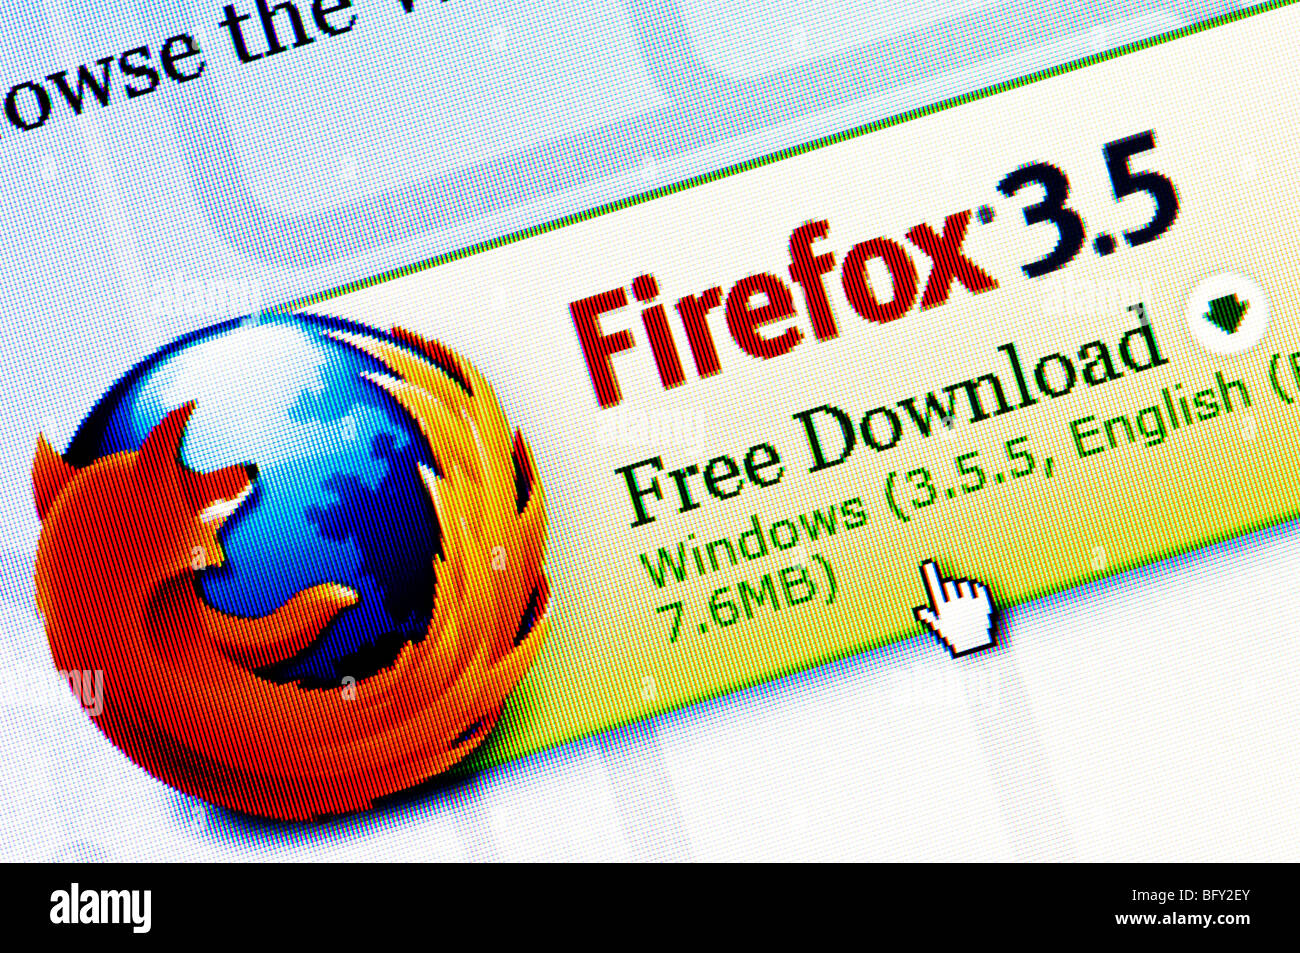 Firefox Stock Photos & Firefox Stock Images - Alamy